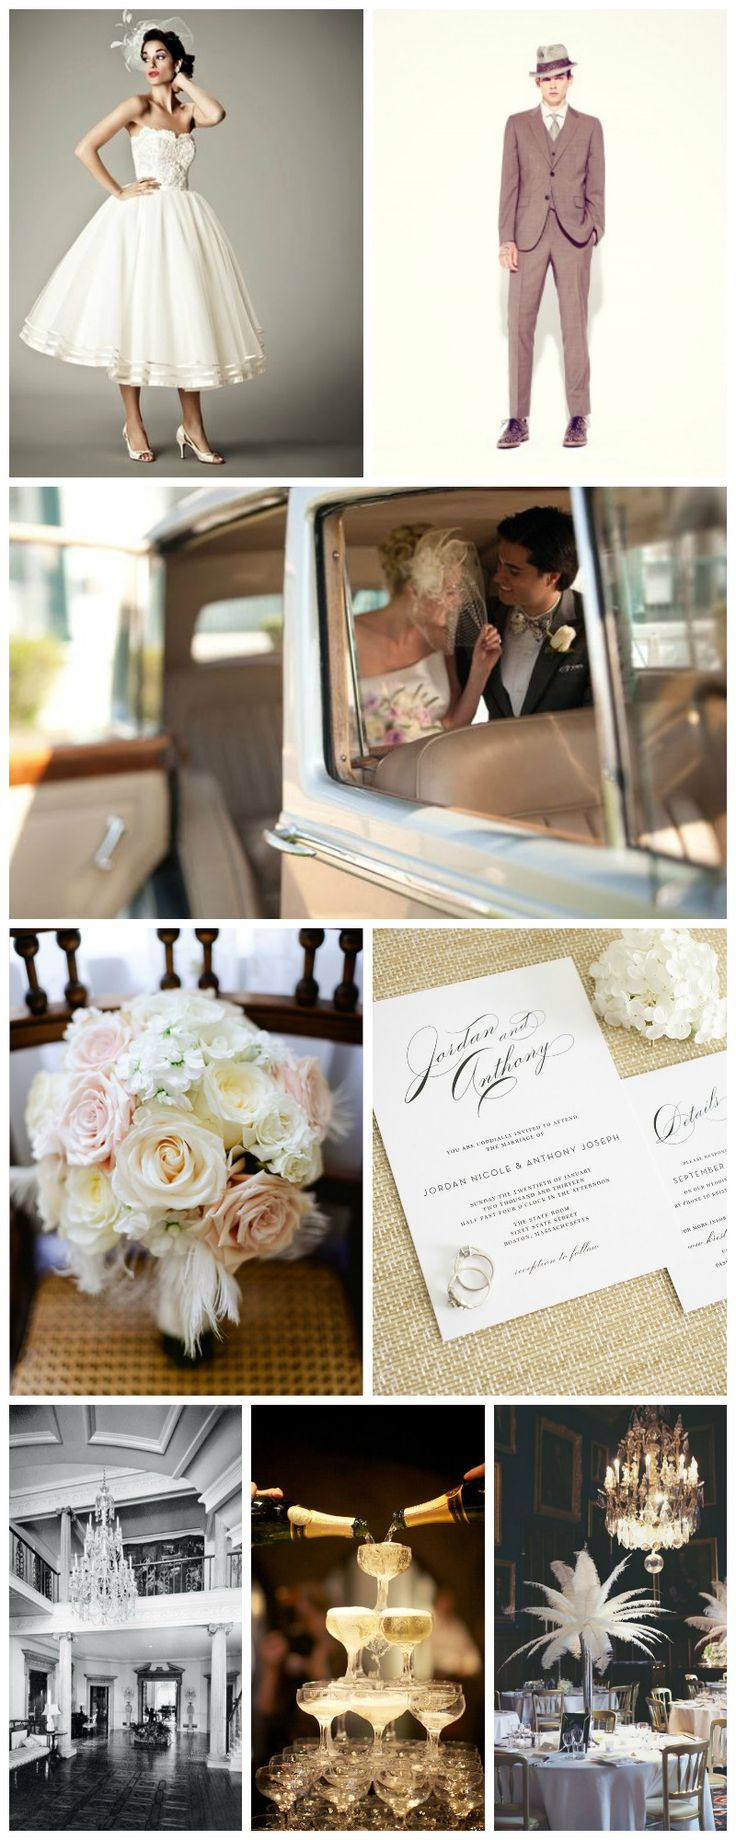 best wedding images on pinterest vintage fashion s fashion